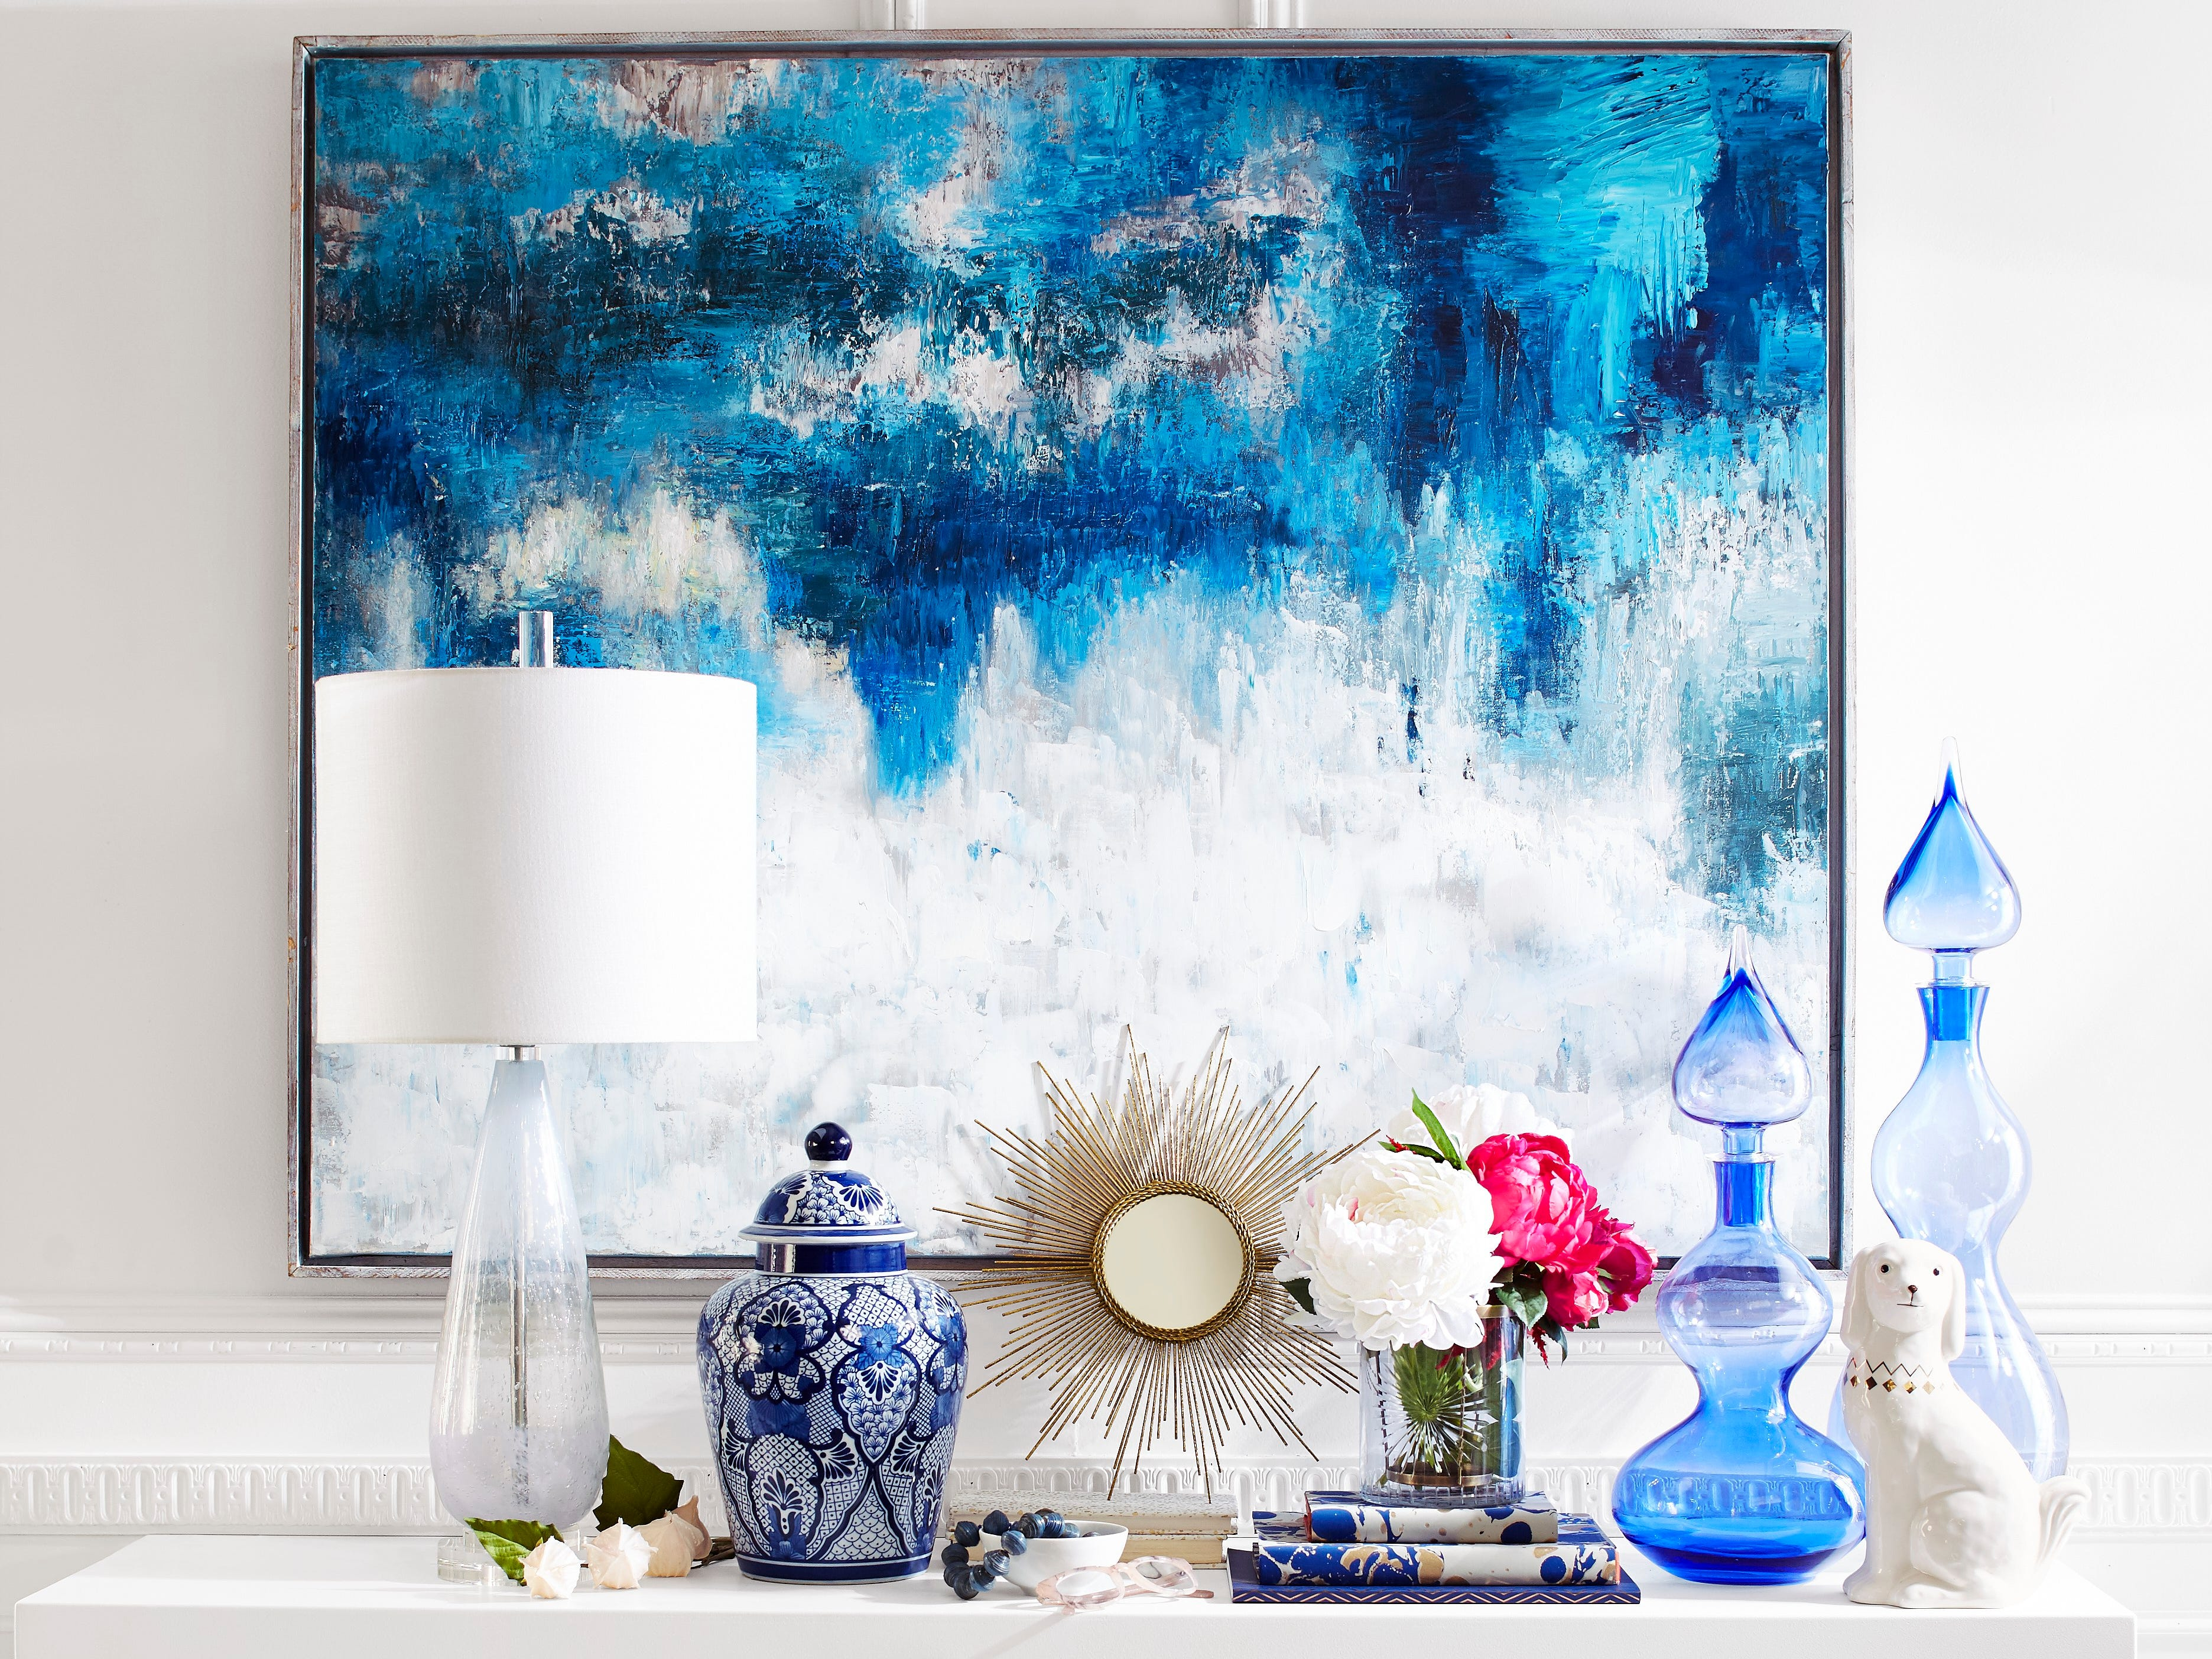 Give your favorite space a focal point with some color. Here, abstract art and accessories from Pier 1 Imports in shades of blue invigorate the room.